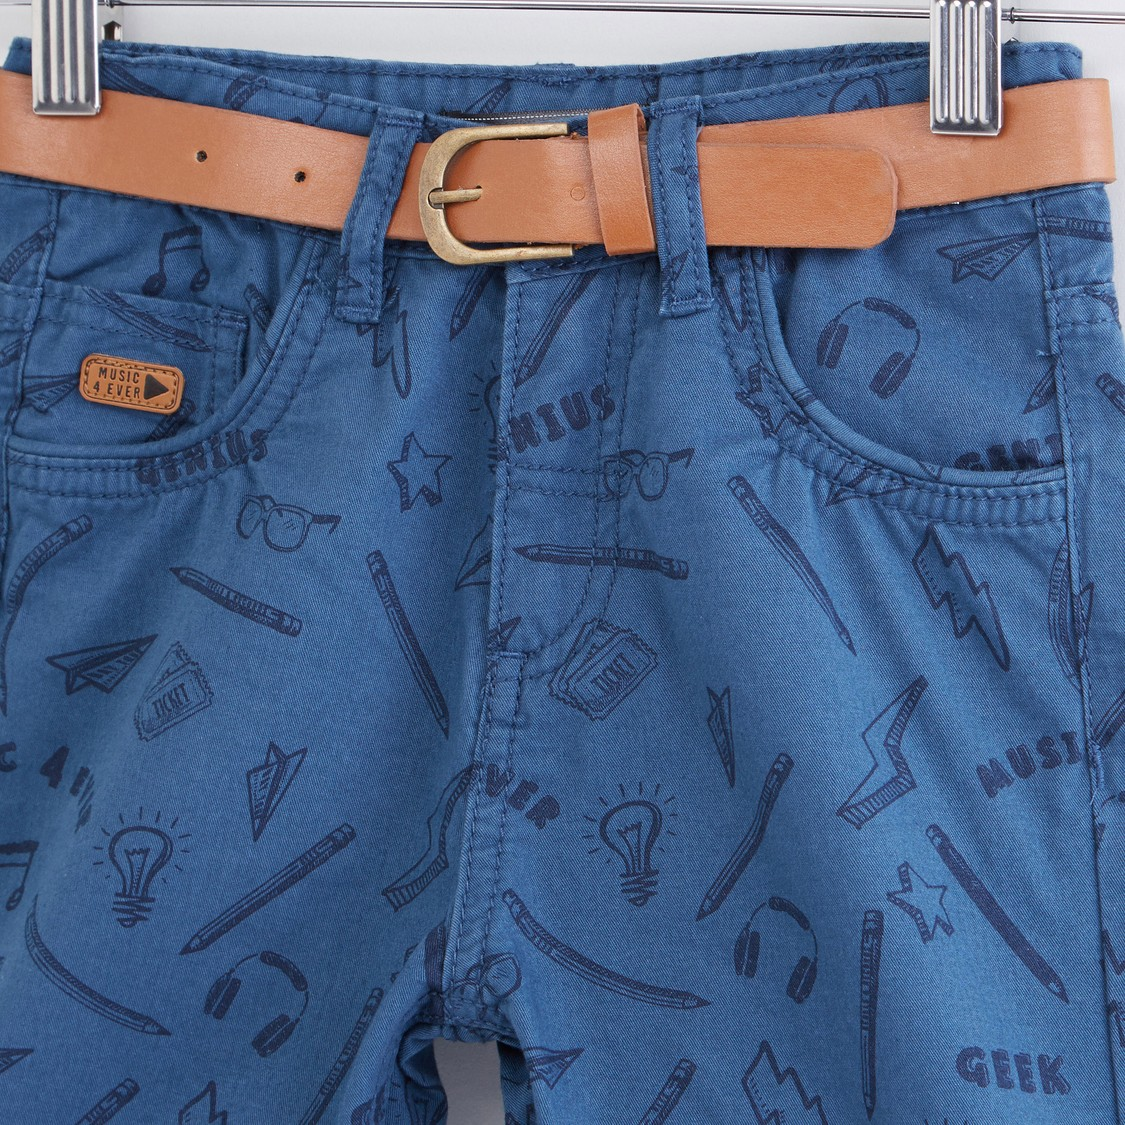 Printed Shorts with Belt and Pocket Detail